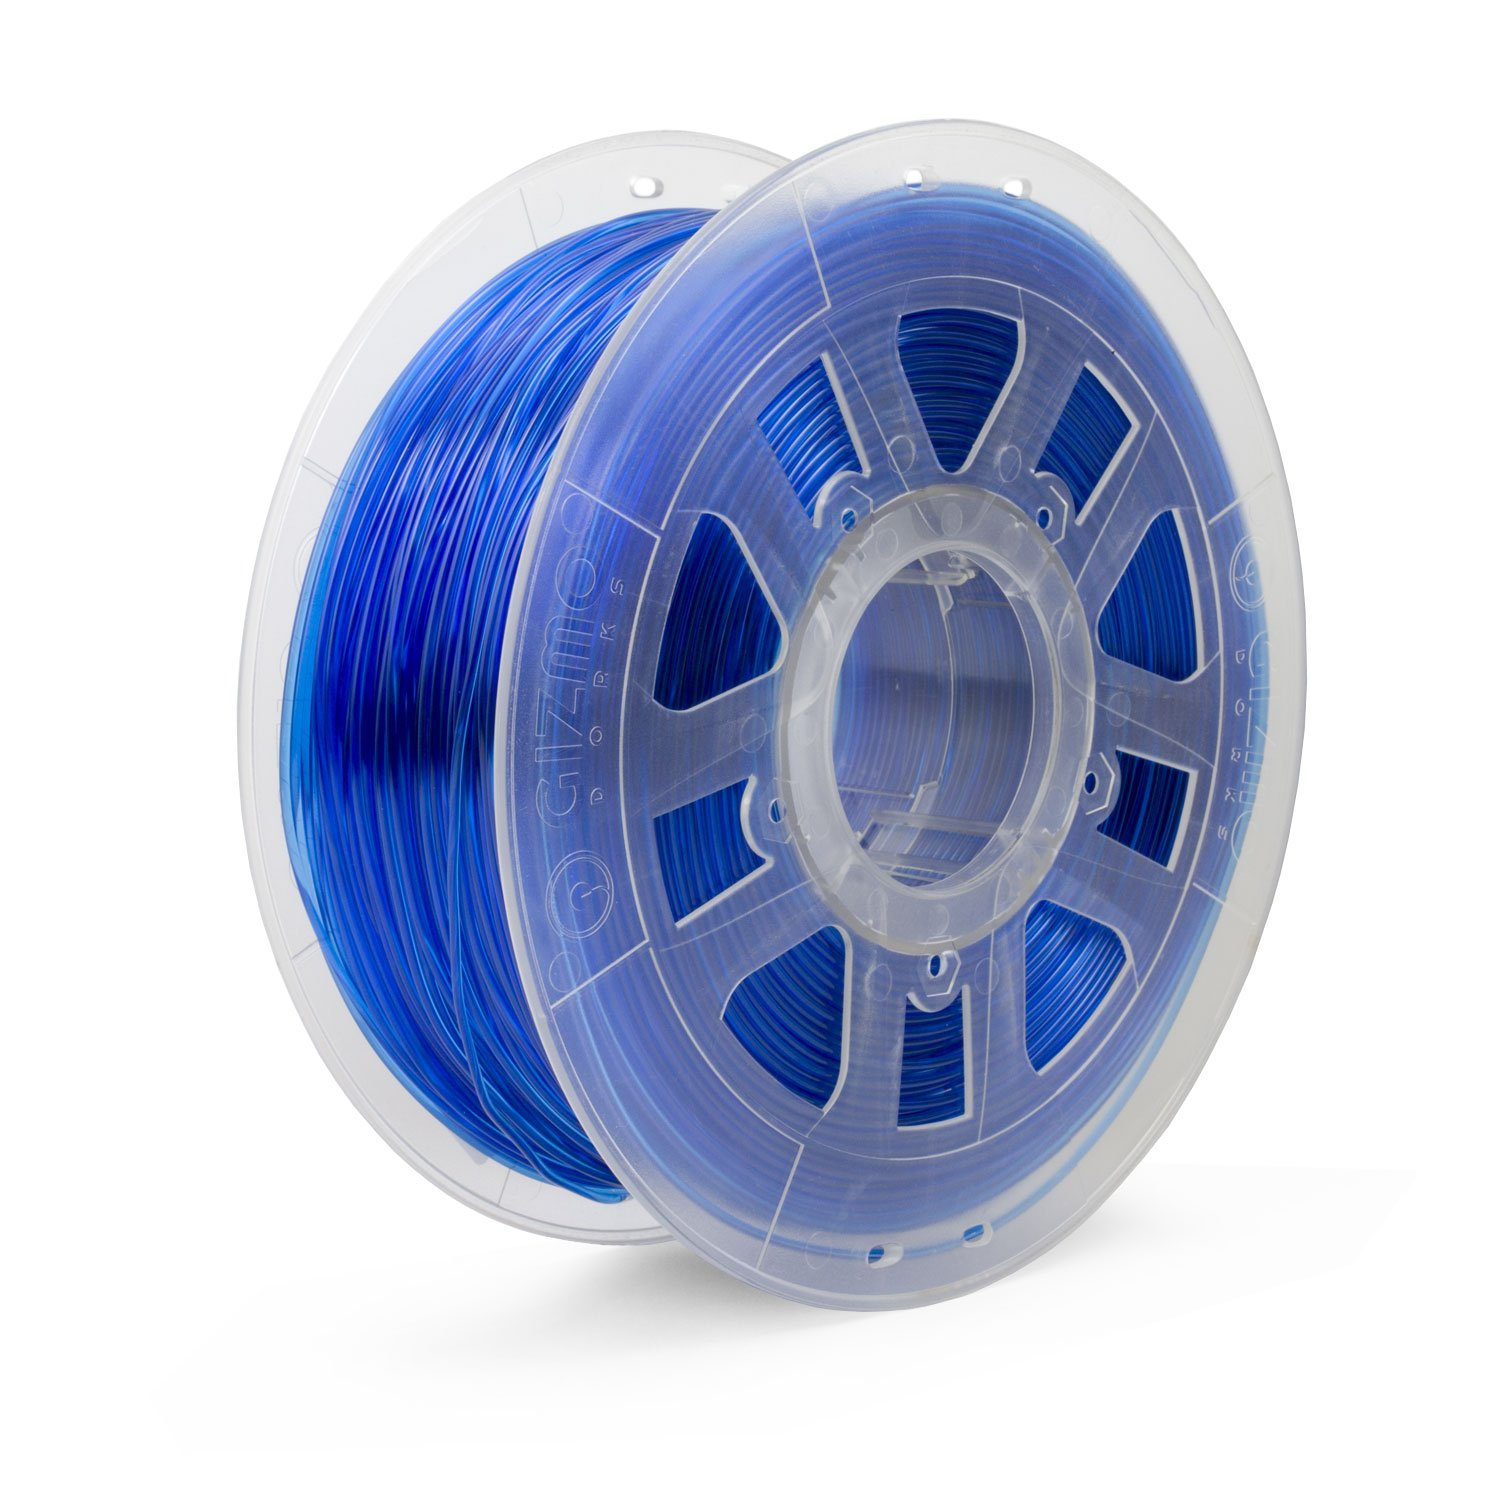 Gizmo Dorks 1.75mm PETG Filament 1kg for Tr We OFFer at cheap prices 3D Long Beach Mall 2.2lbs Printers